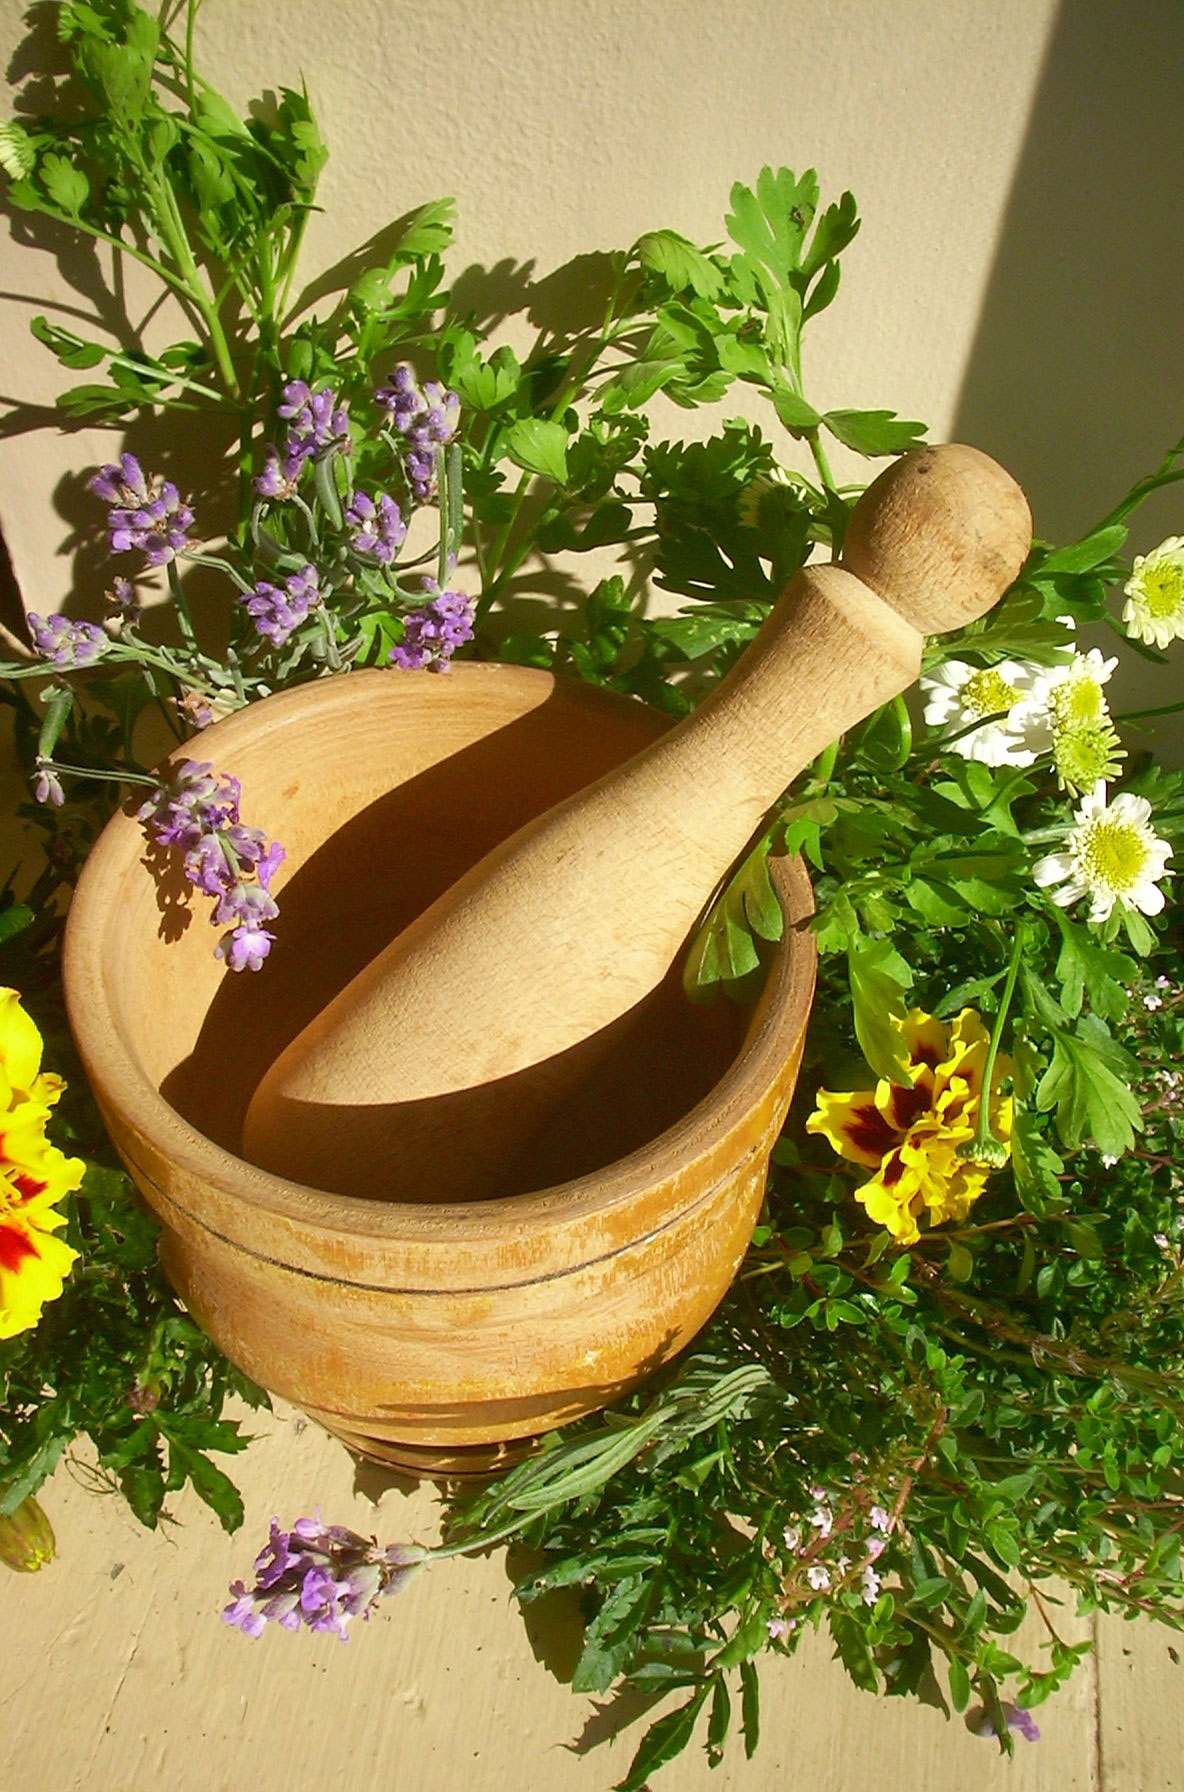 Medicinal Plant Garden - Tips On Growing Medicinal Herbs